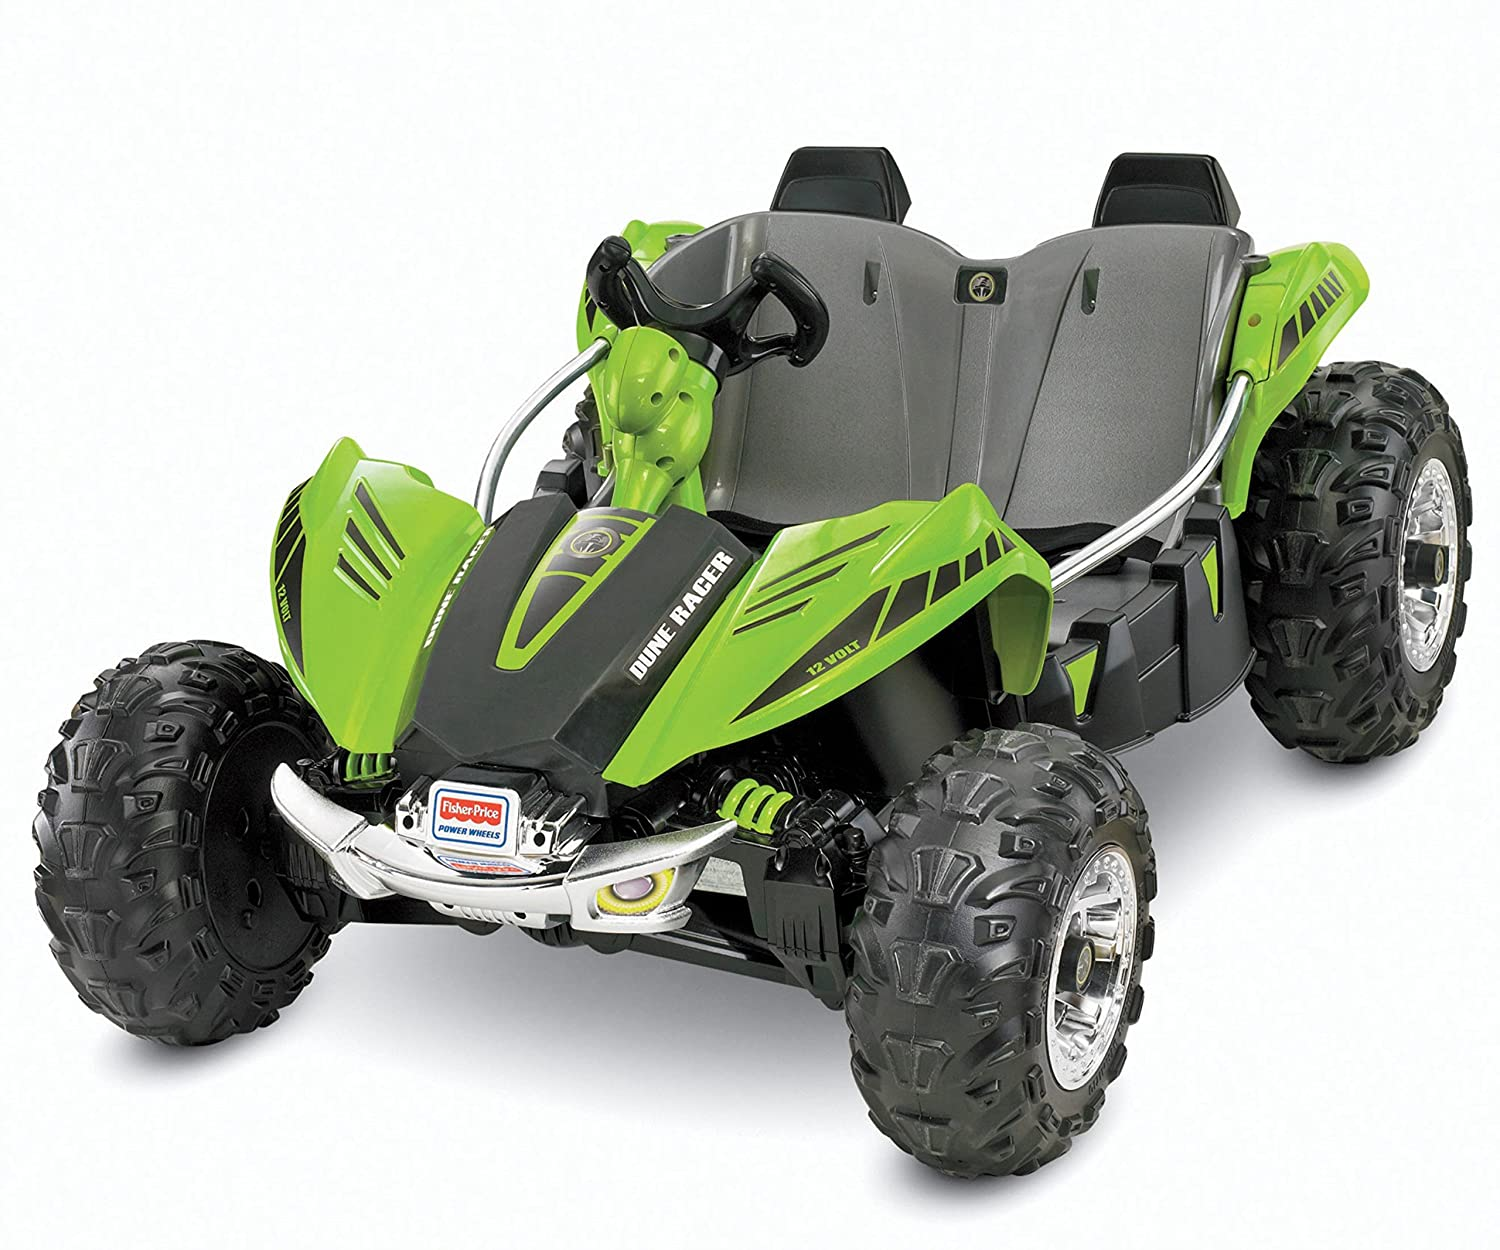 91 h3JubTCL. AC SL1500 These Toys Were Banned For Being Seriously Dangerous